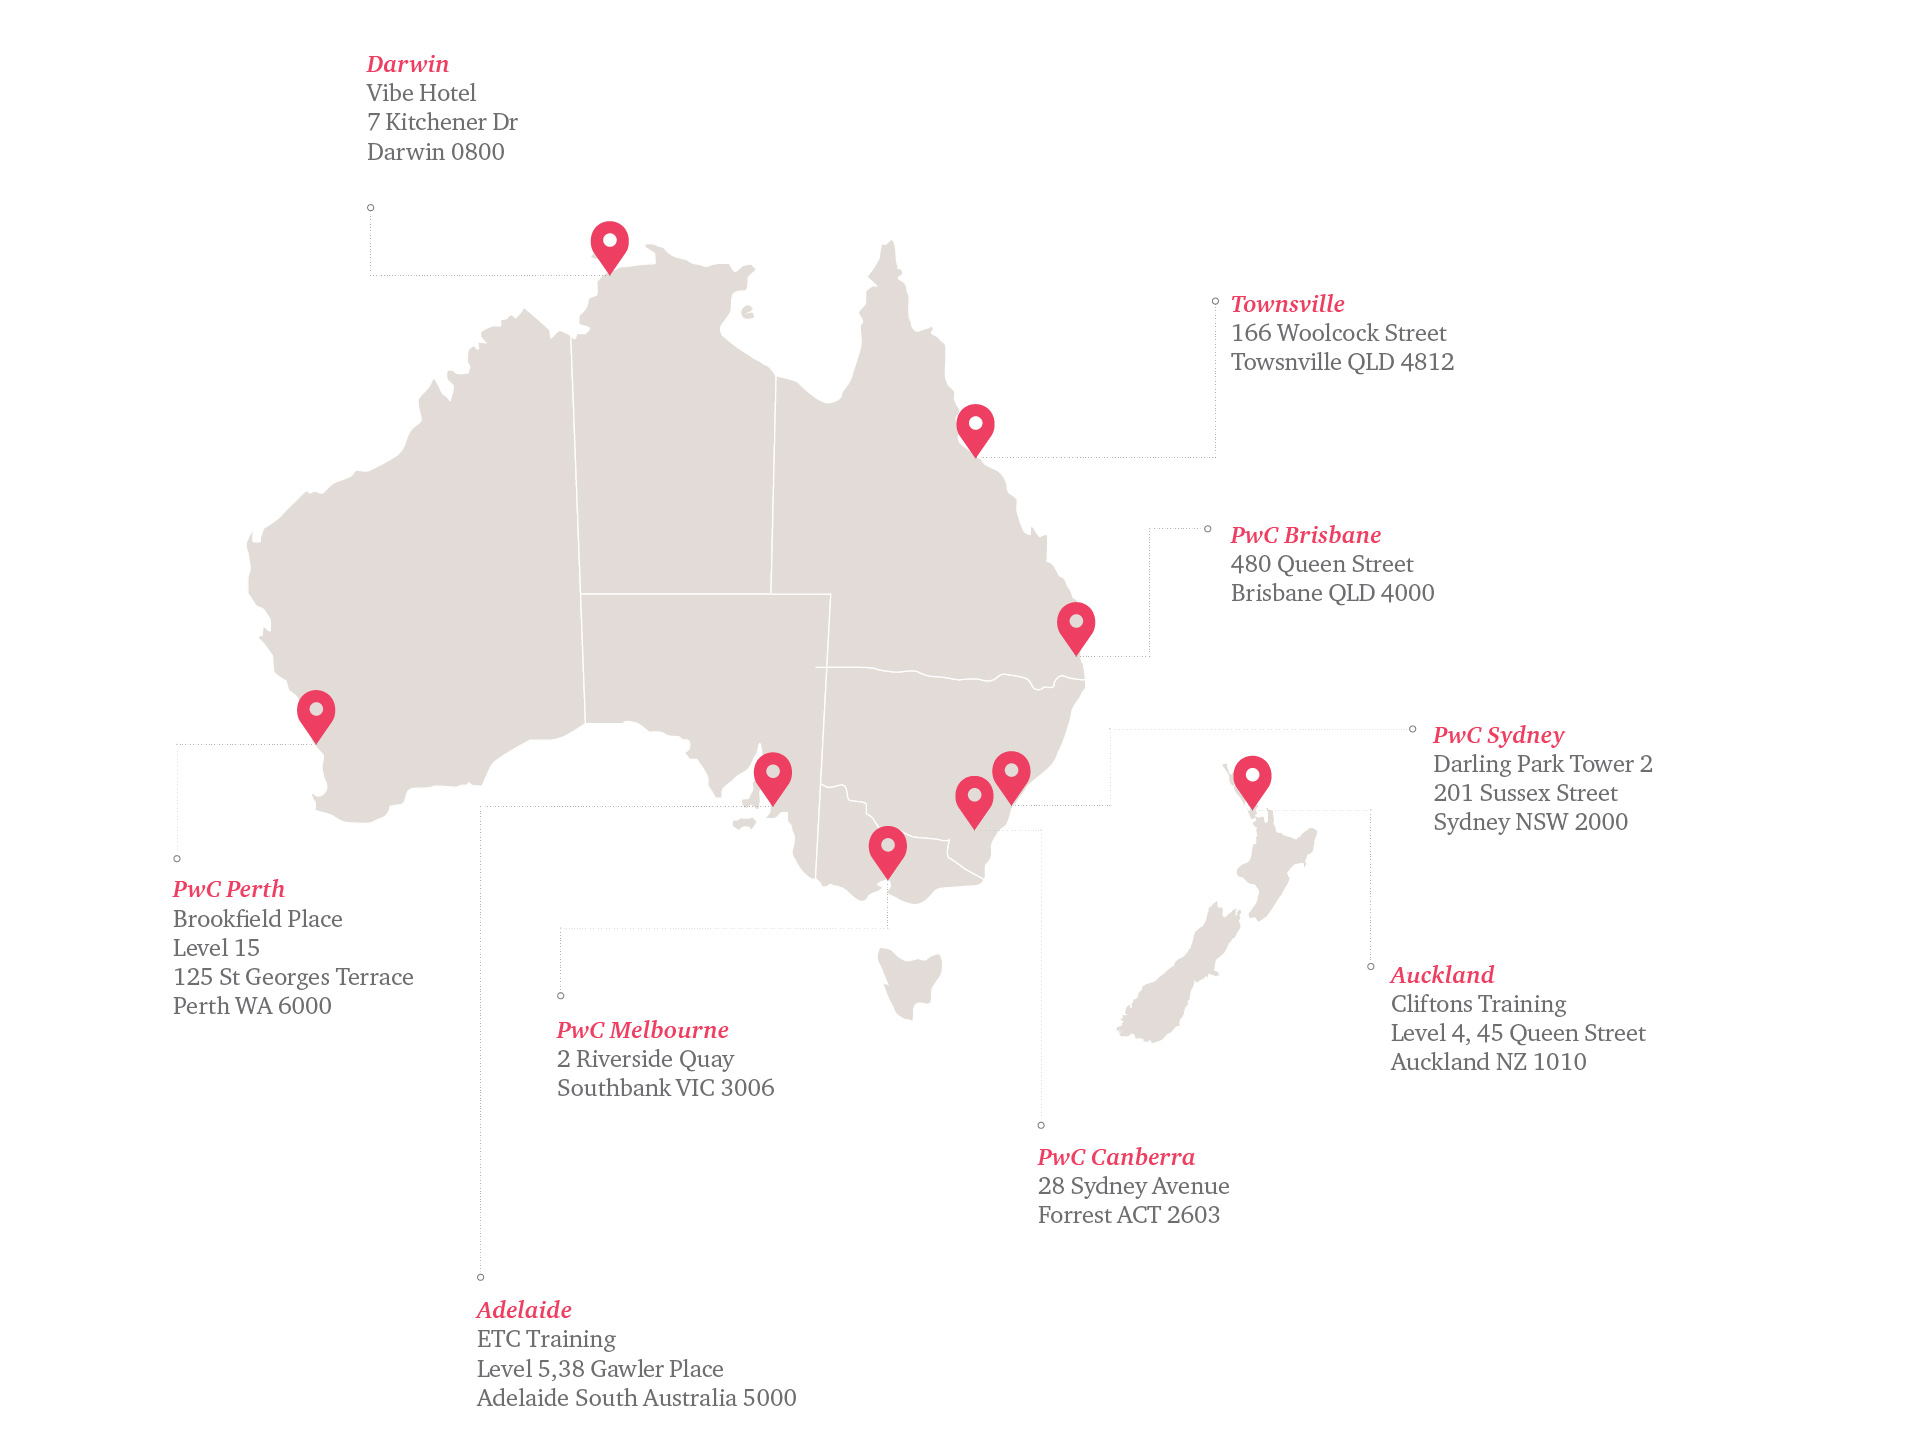 Locations of auditor training courses in Australia and New Zealand